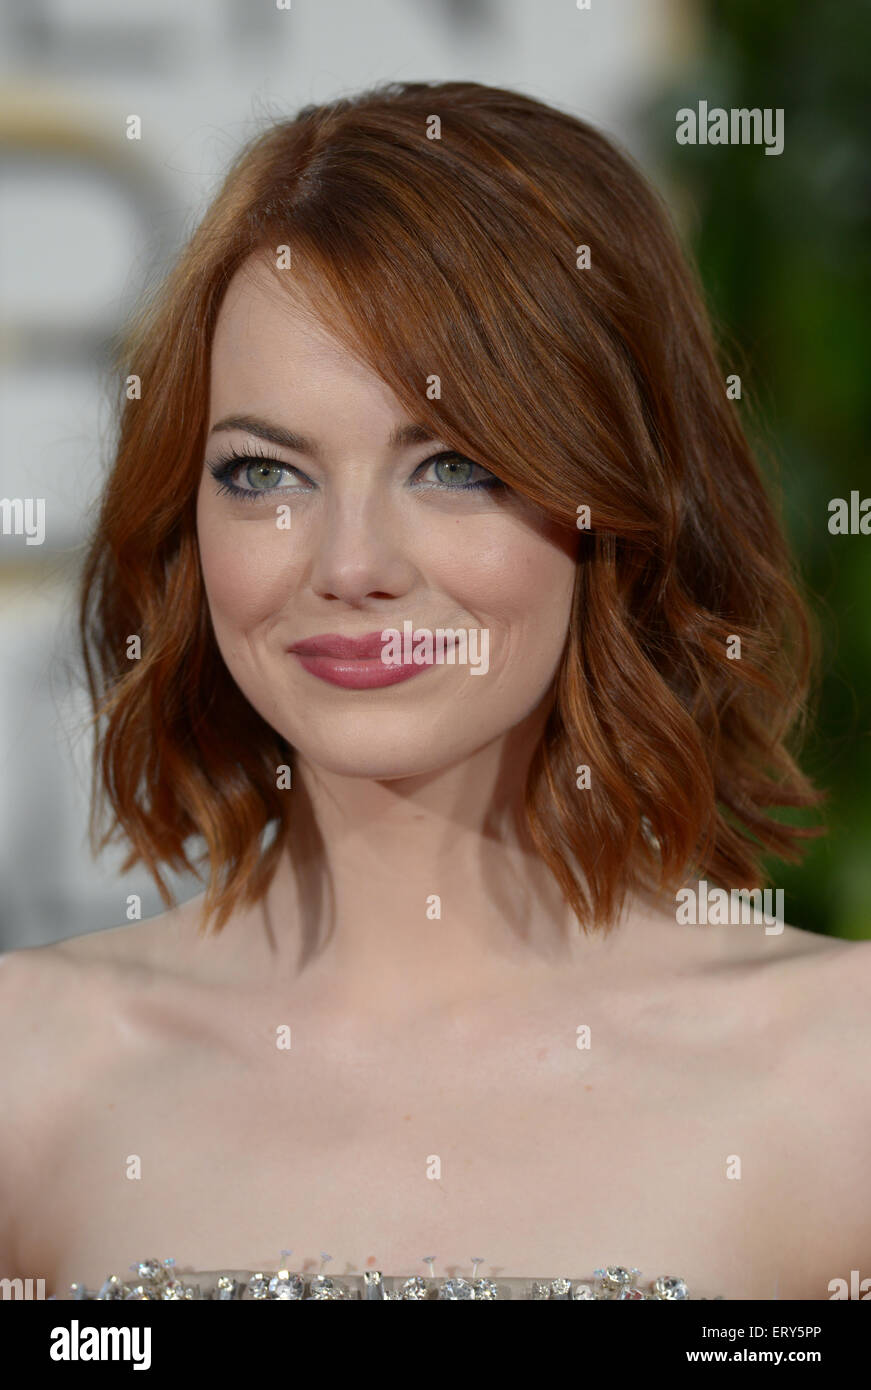 Emma Stone, Los Angeles, CA Photo Stock